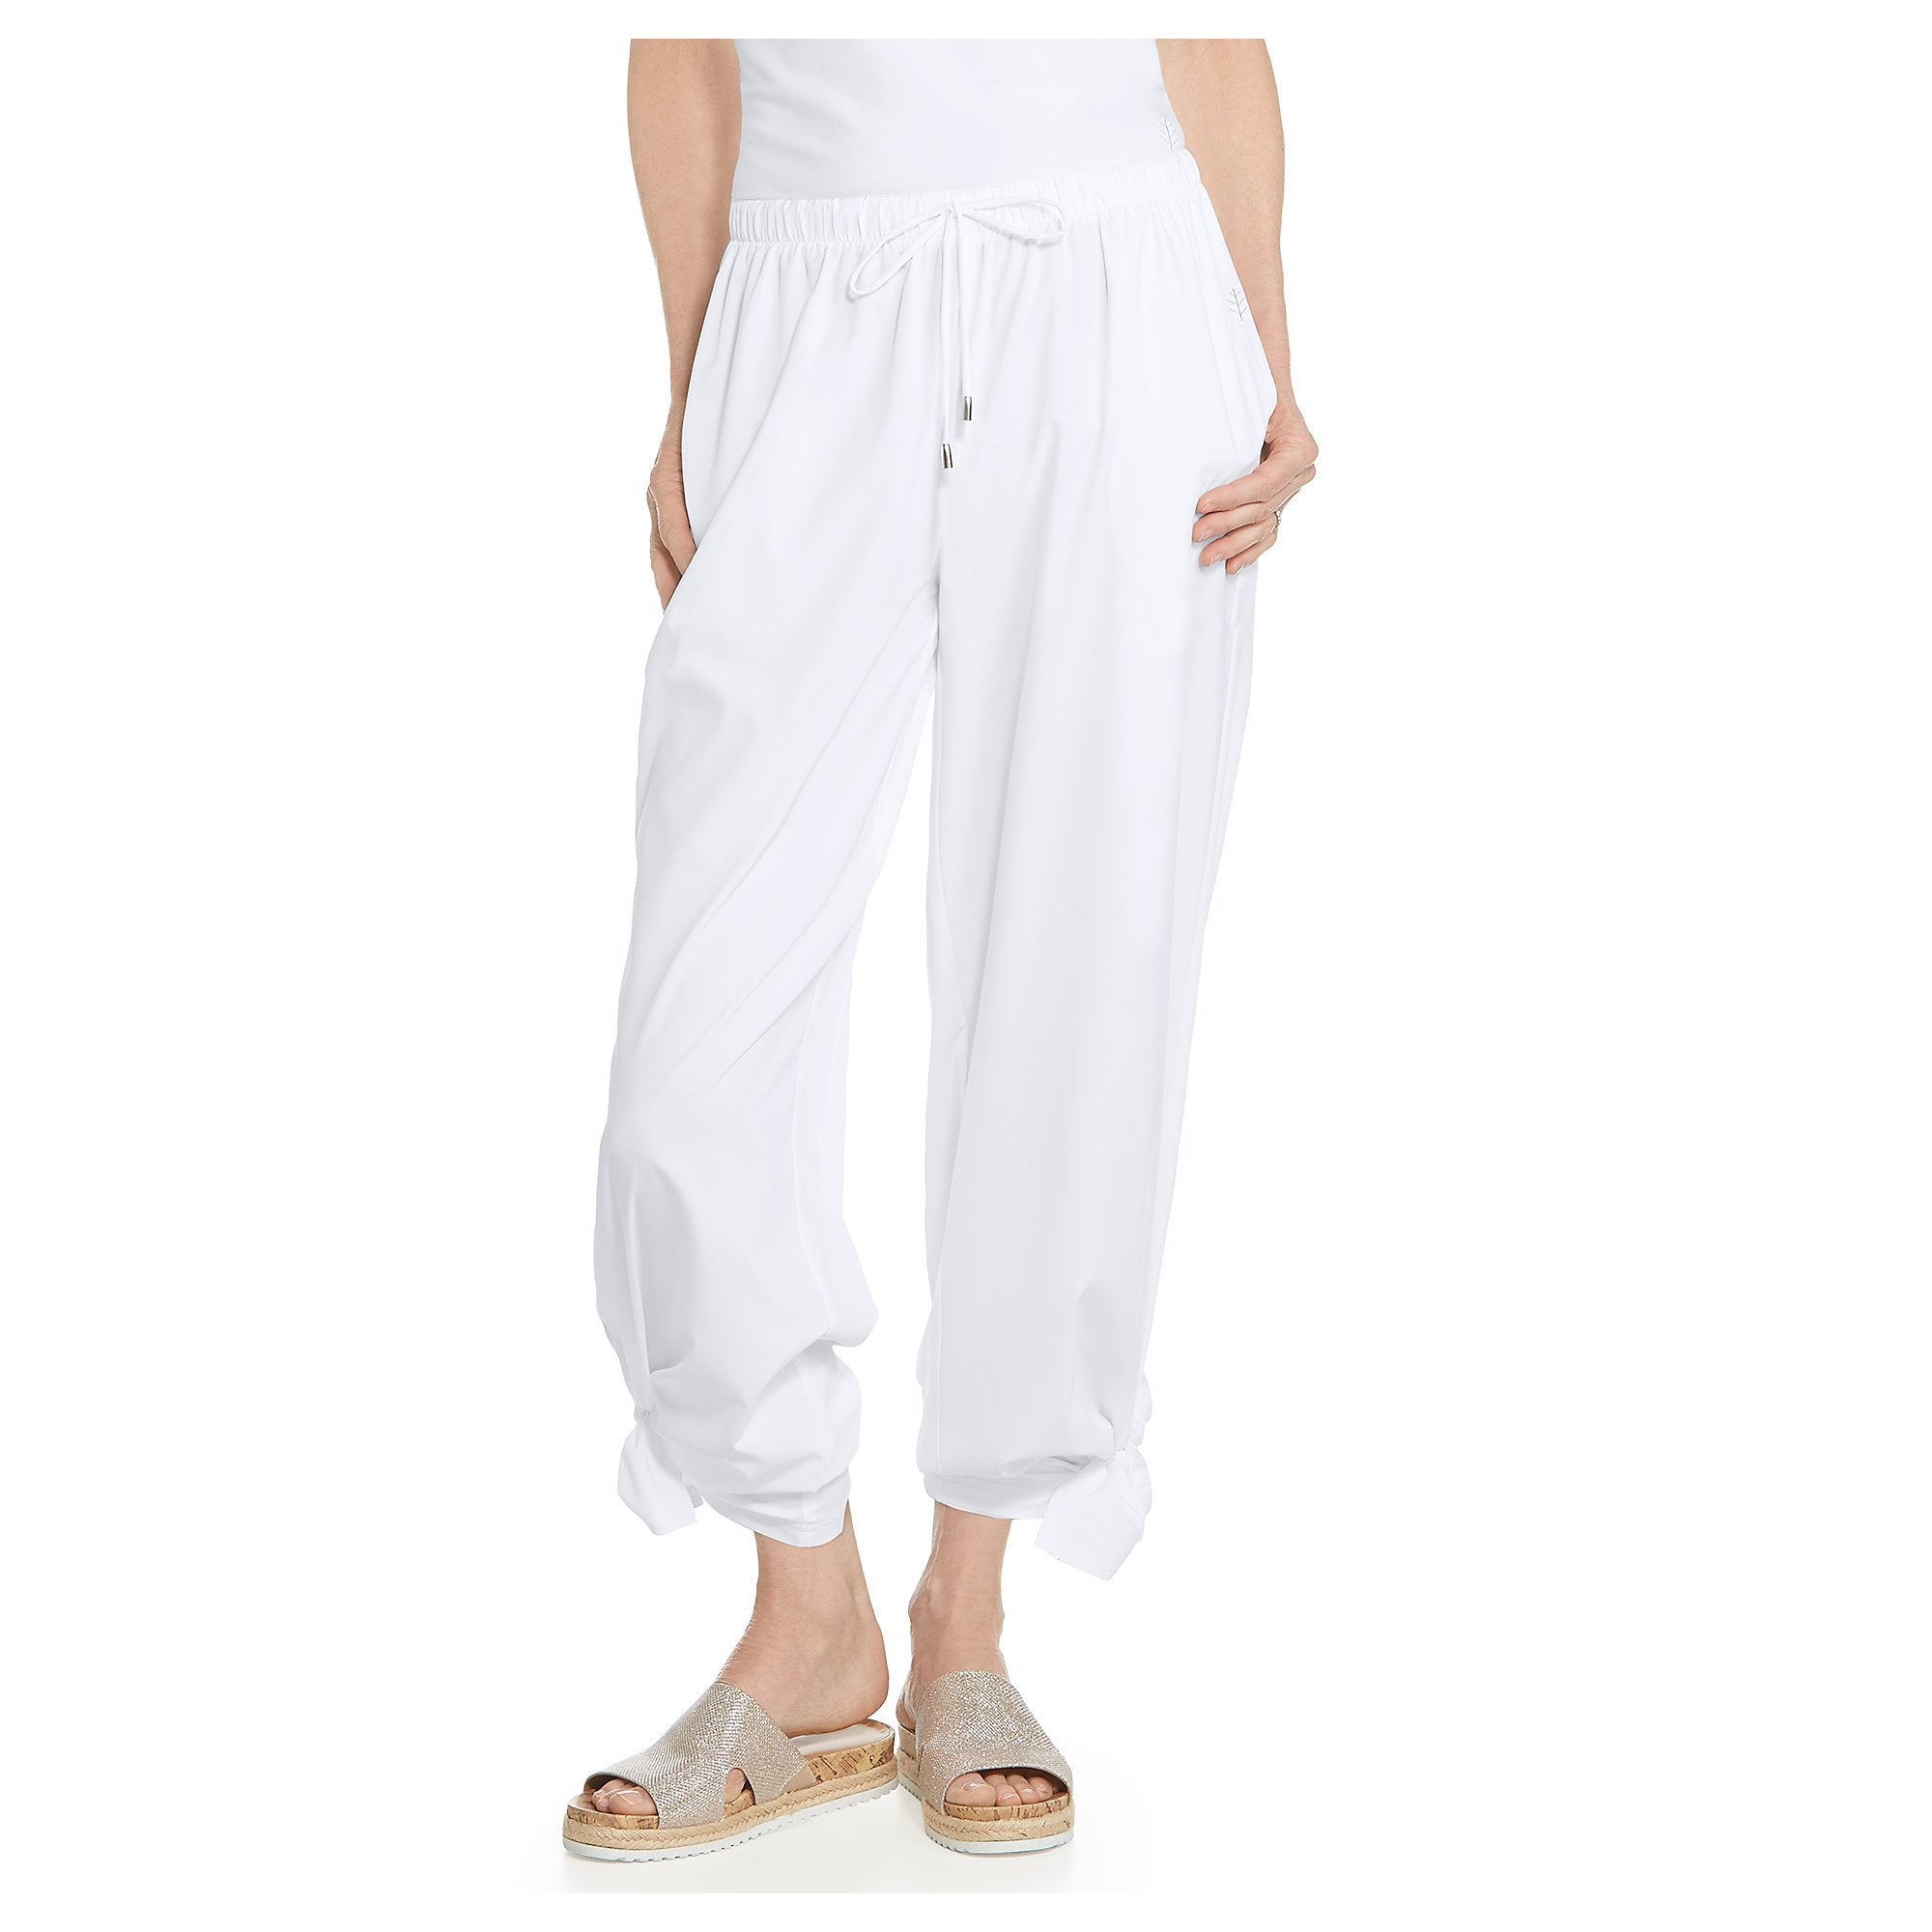 PETRA WIDE WHITE PANTS - Molly's! A Chic and Unique Boutique